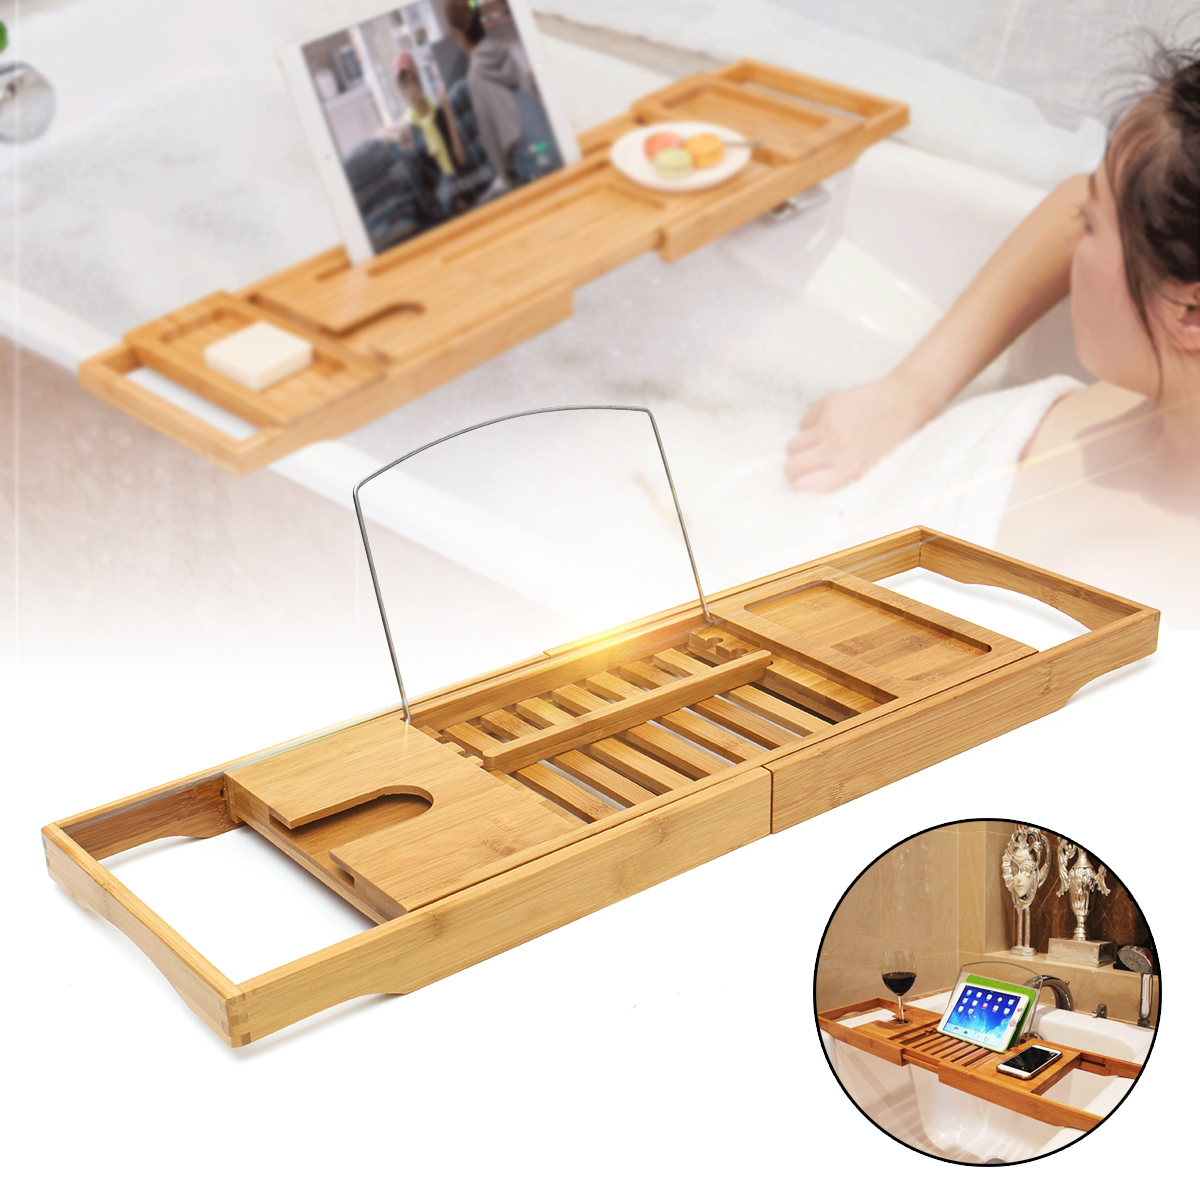 Luxury Bathroom Bamboo Bath Shelf Bath Tray Bathtub Holder Bridge ...